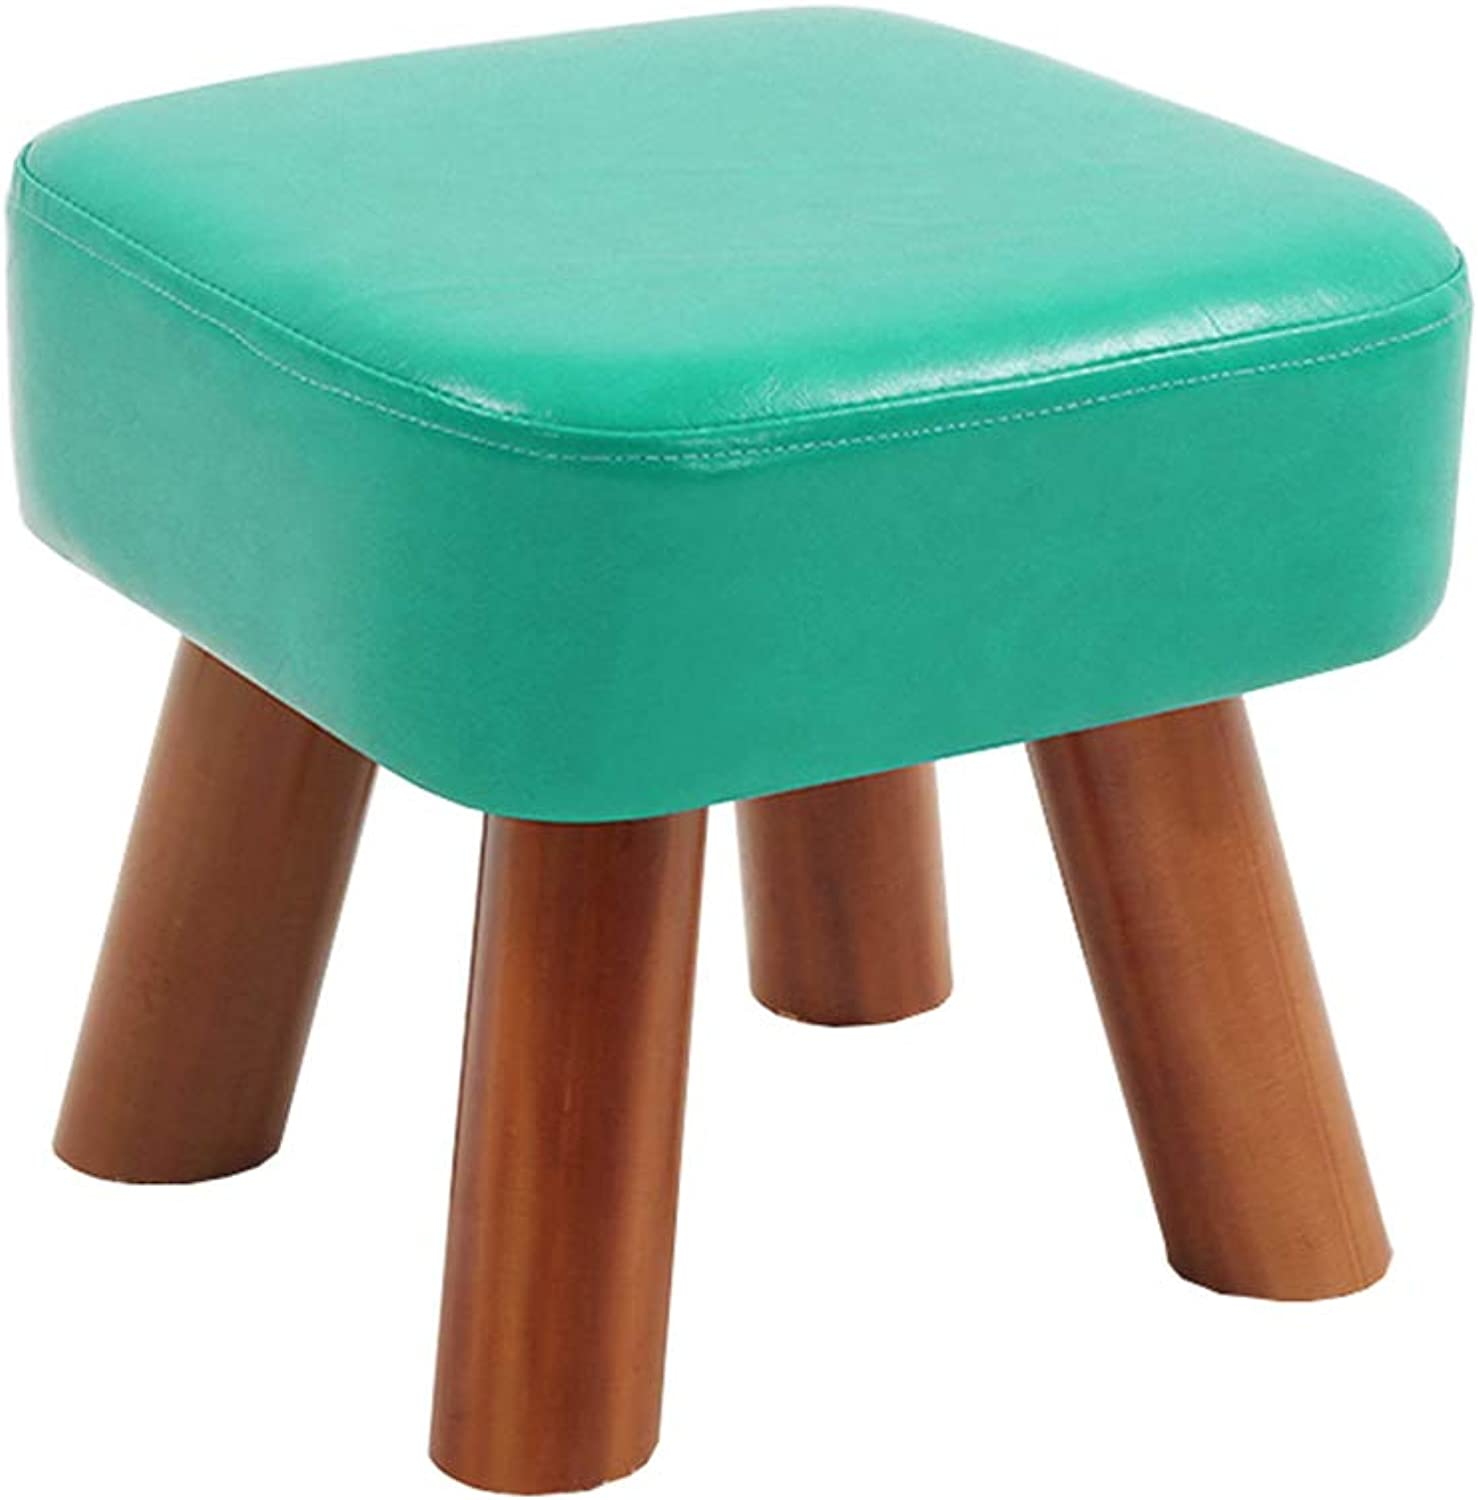 Small Stool Household Solid Wood Footstool Artificial Leather Home Anti-Slip Stool 5 colors 2 Sizes (color   bluee, Size   28  28  25cm)